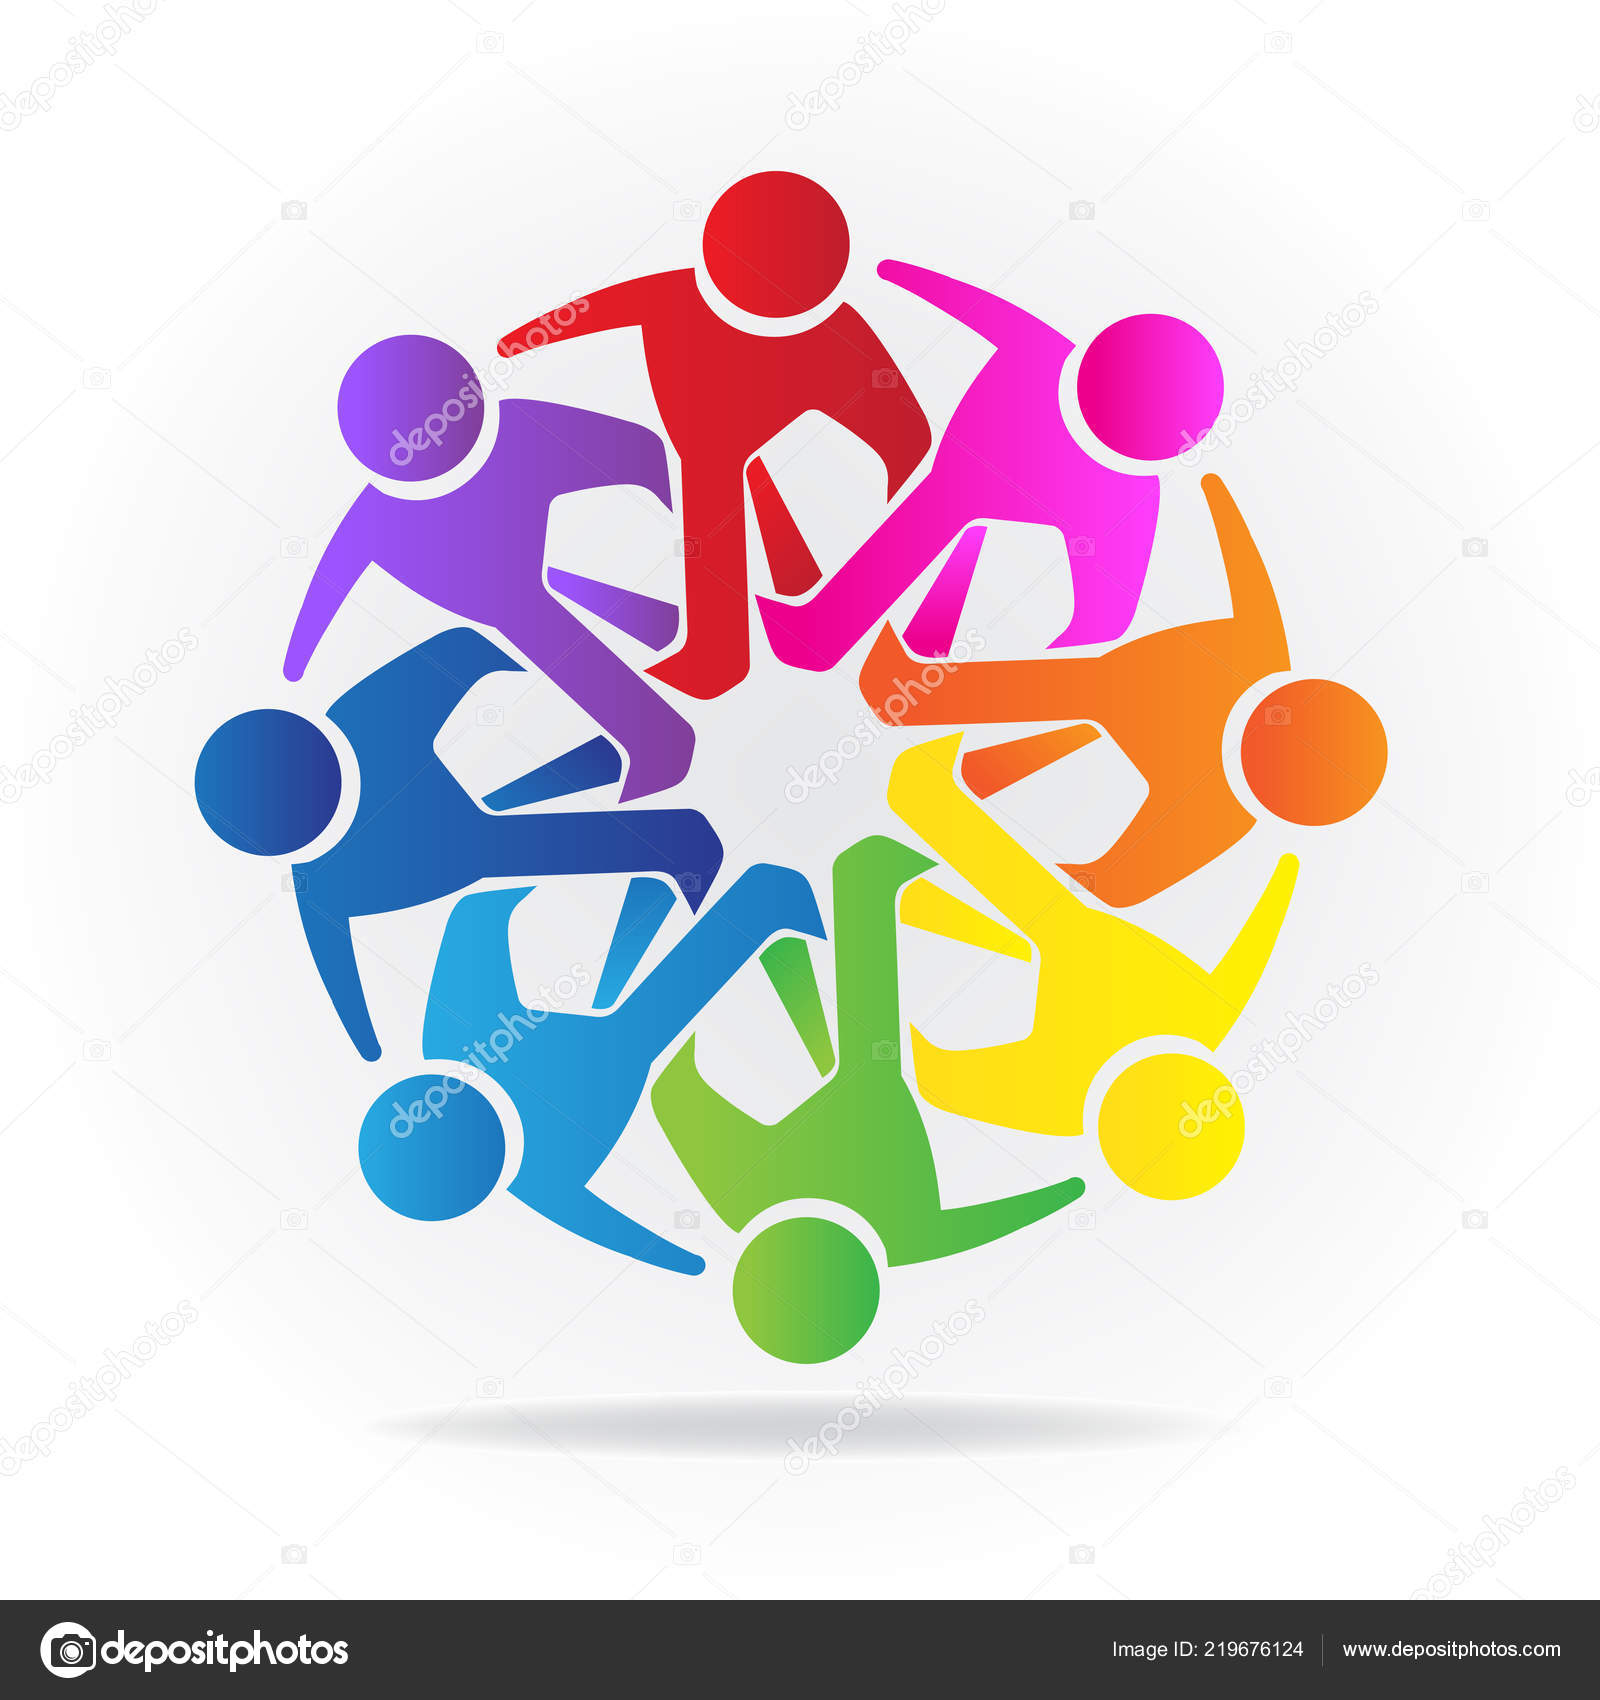 Logo Teamwork Business People Vector Design Template Image Icon